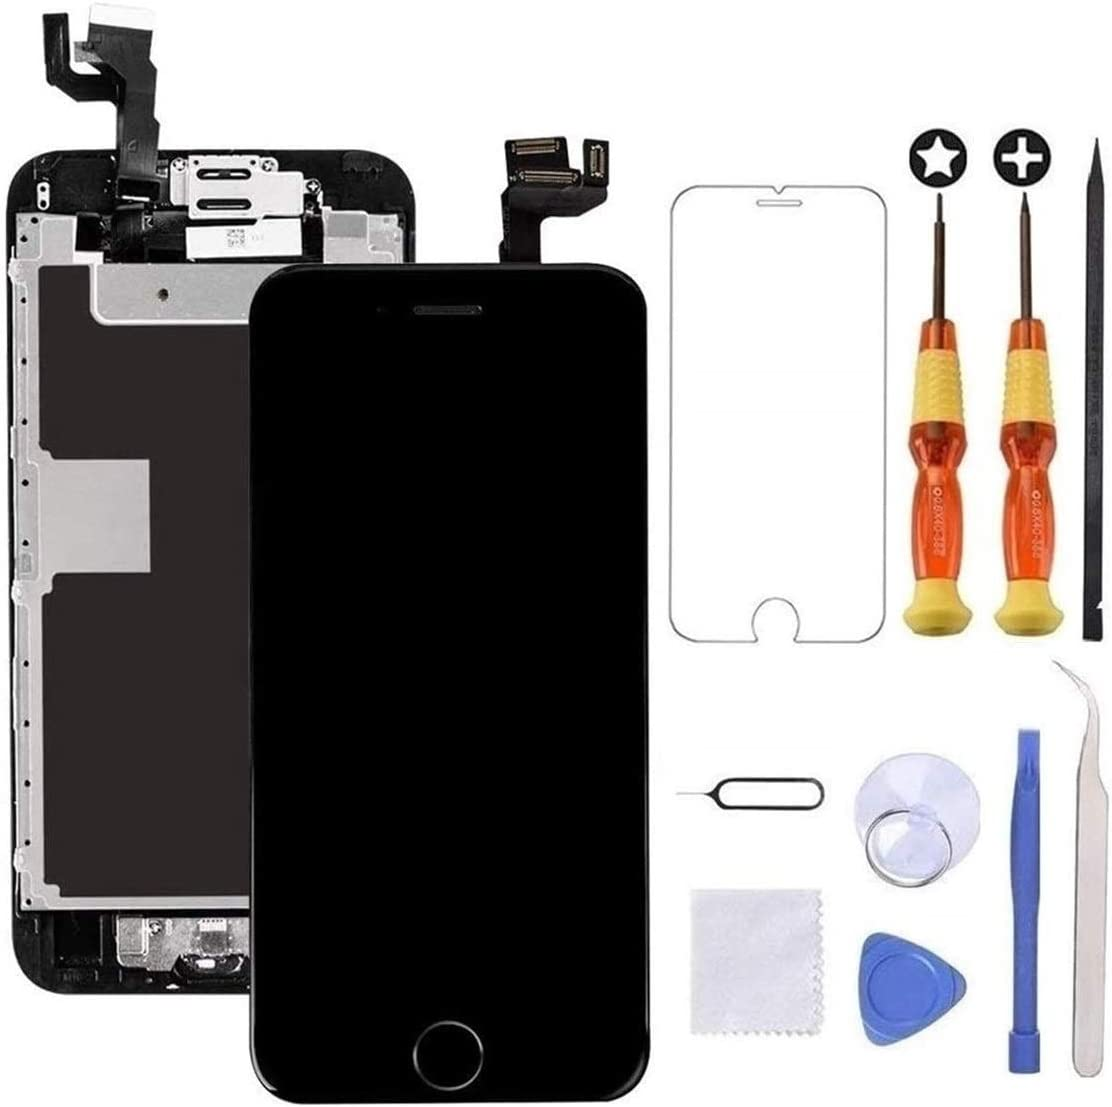 Brinonac for iPhone 6s Plus Screen Replacement Black Touch Display LCD Digitizer Full Assembly with Front Camera,Proximity Sensor,Ear Speaker and Home Button Including Repair Tool and Screen Protector